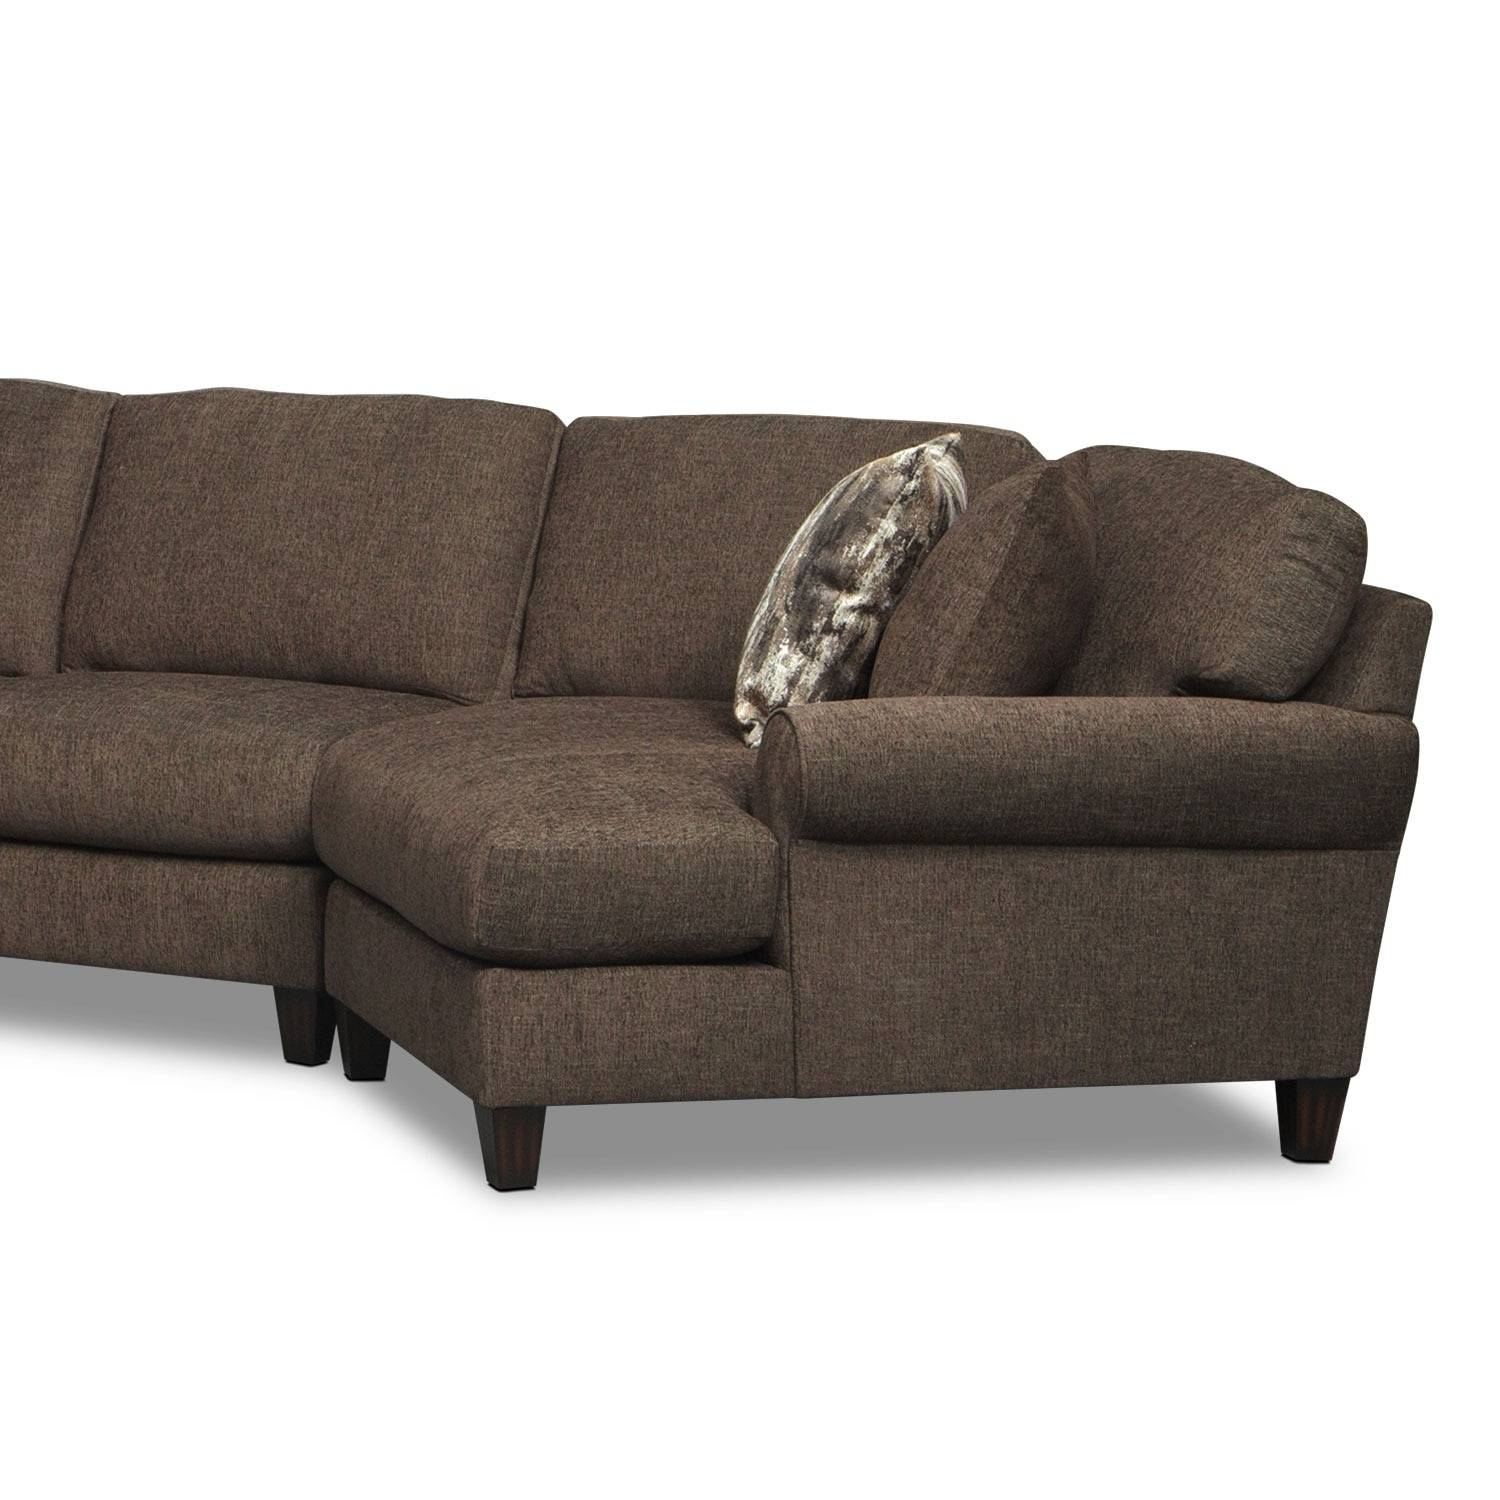 Karma 3-Piece Sectional With Left-Facing Chaise And Right-Facing within Sectional Sofa With Cuddler Chaise (Image 8 of 25)